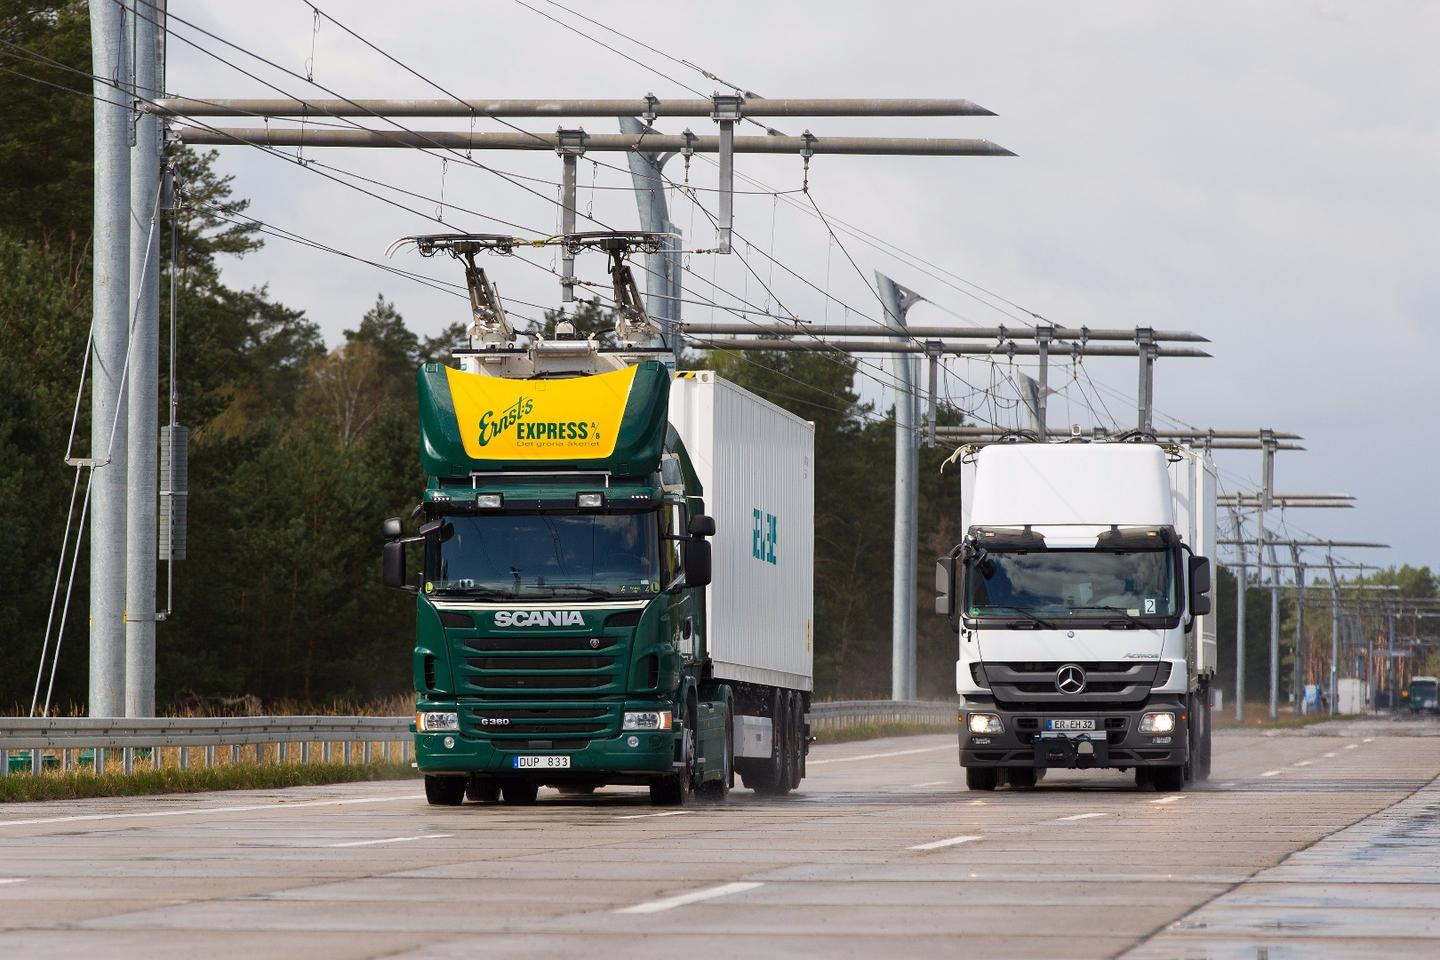 The Siemens eHighway field trial will be the first on a public highway in Germany